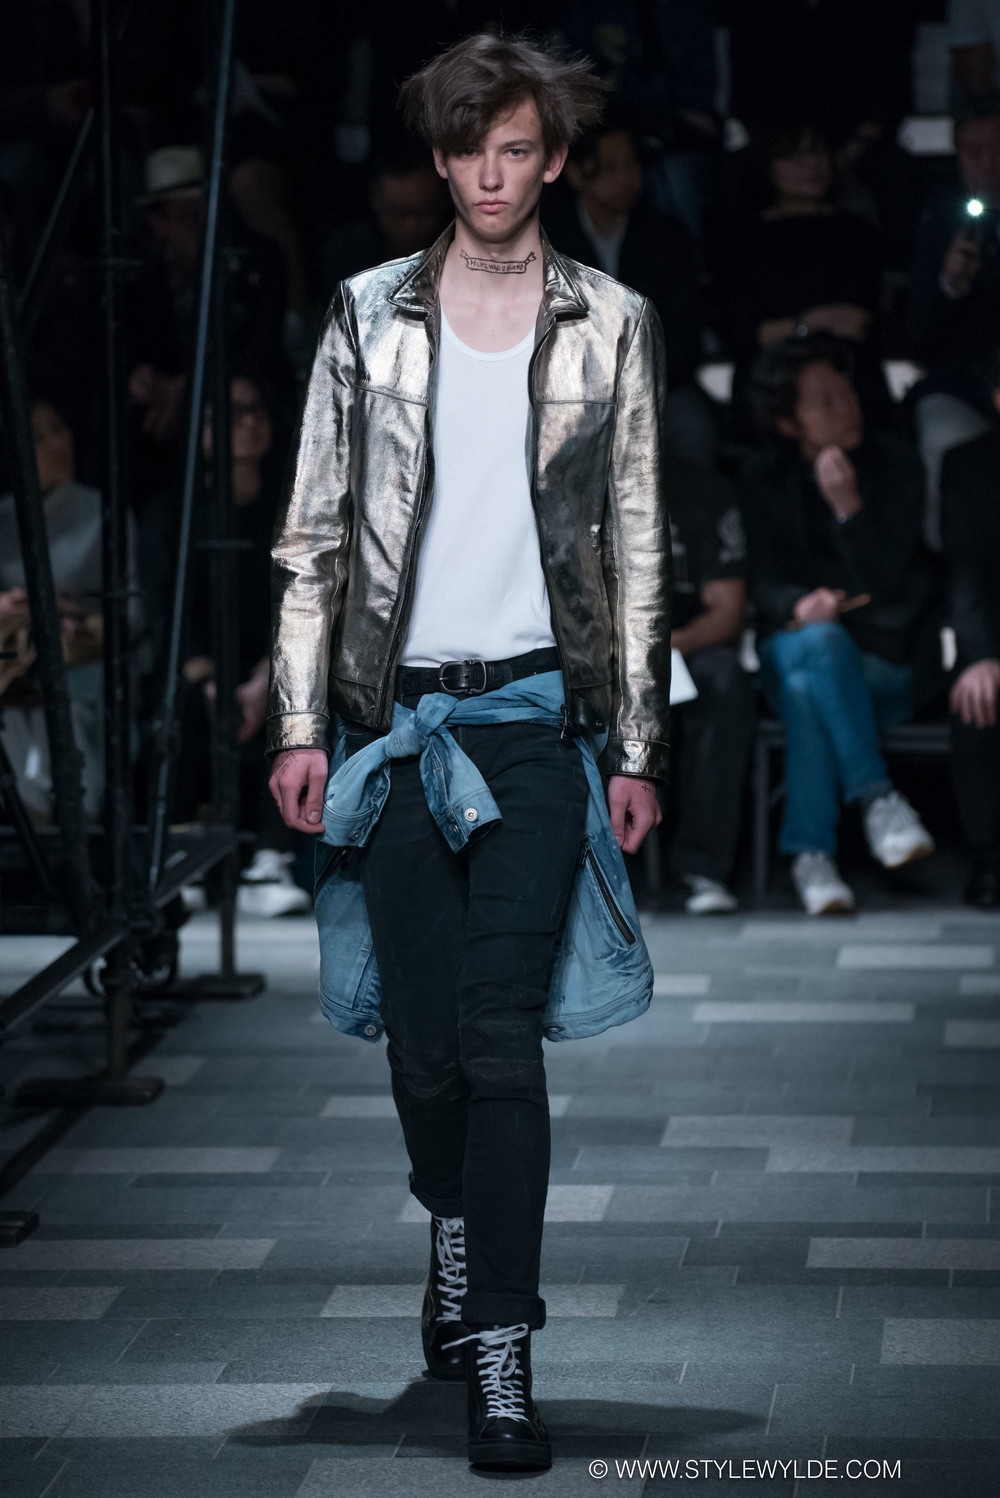 stylewylde_5351_pour_les_hommes_fw_2016-26.jpg